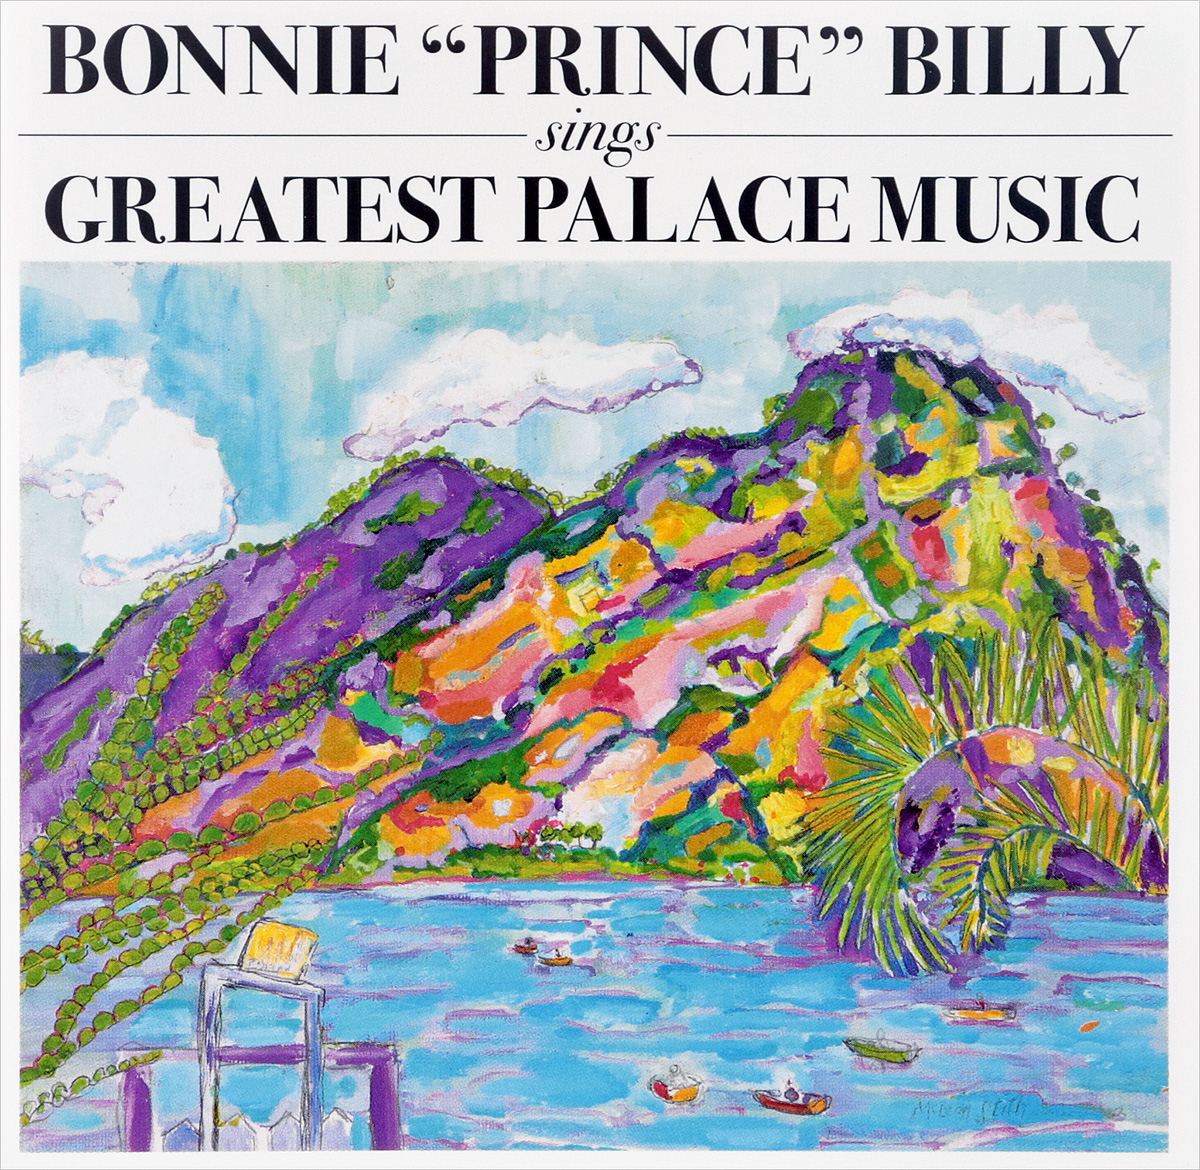 Уилл Олдхэм Bonnie Prince Billy. Sings Greatest Palace Music уилл олдхэм bonnie prince billy now here s my plan